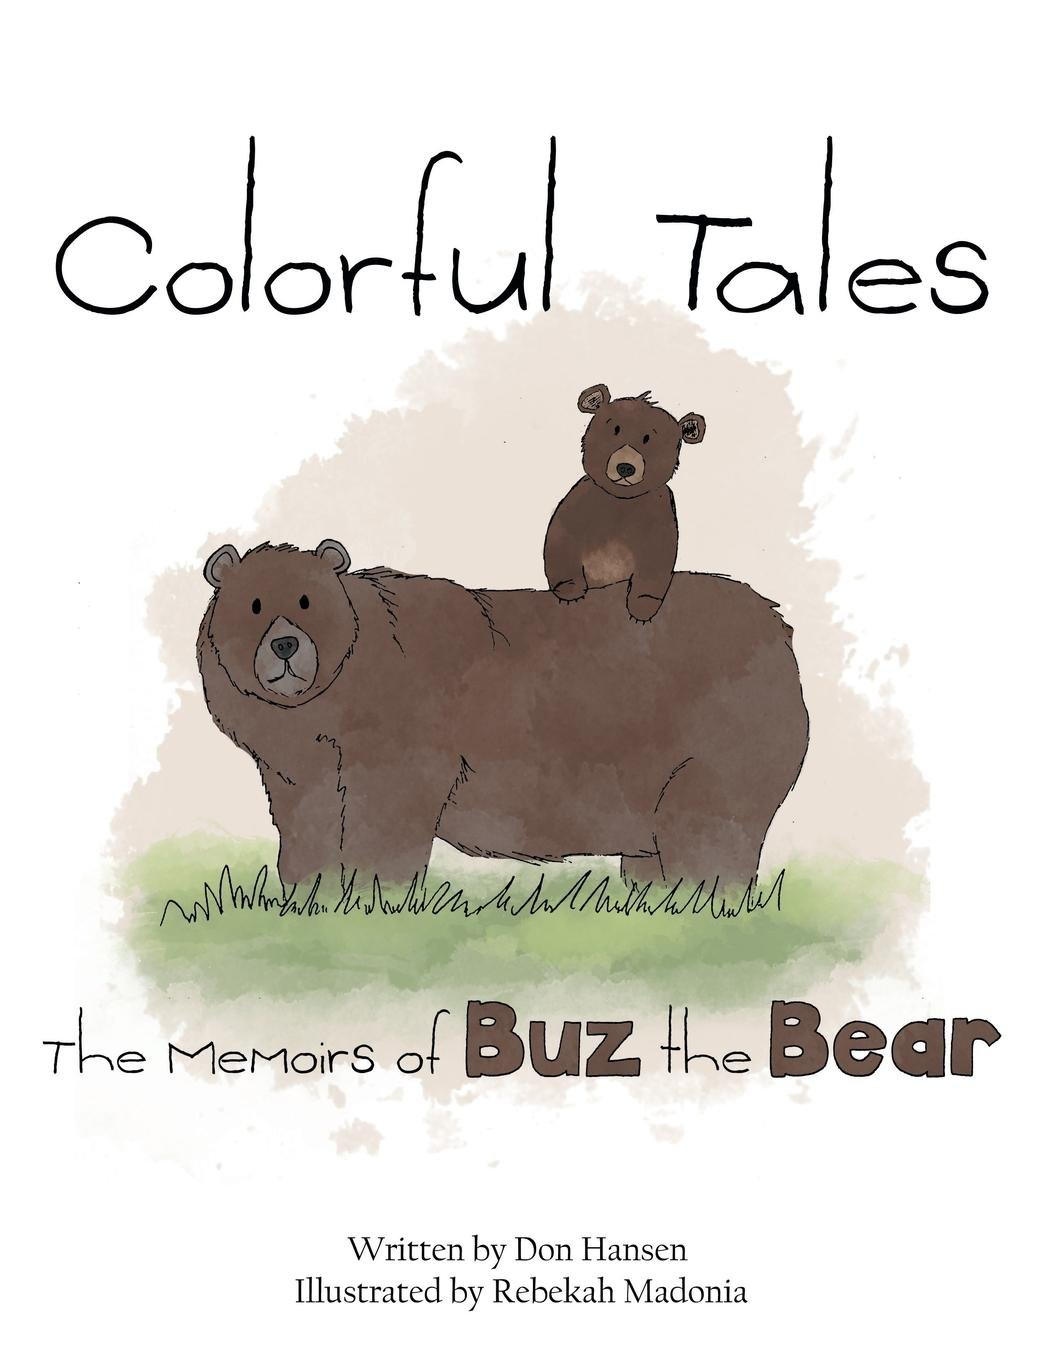 Memoirs of Buz the Bear